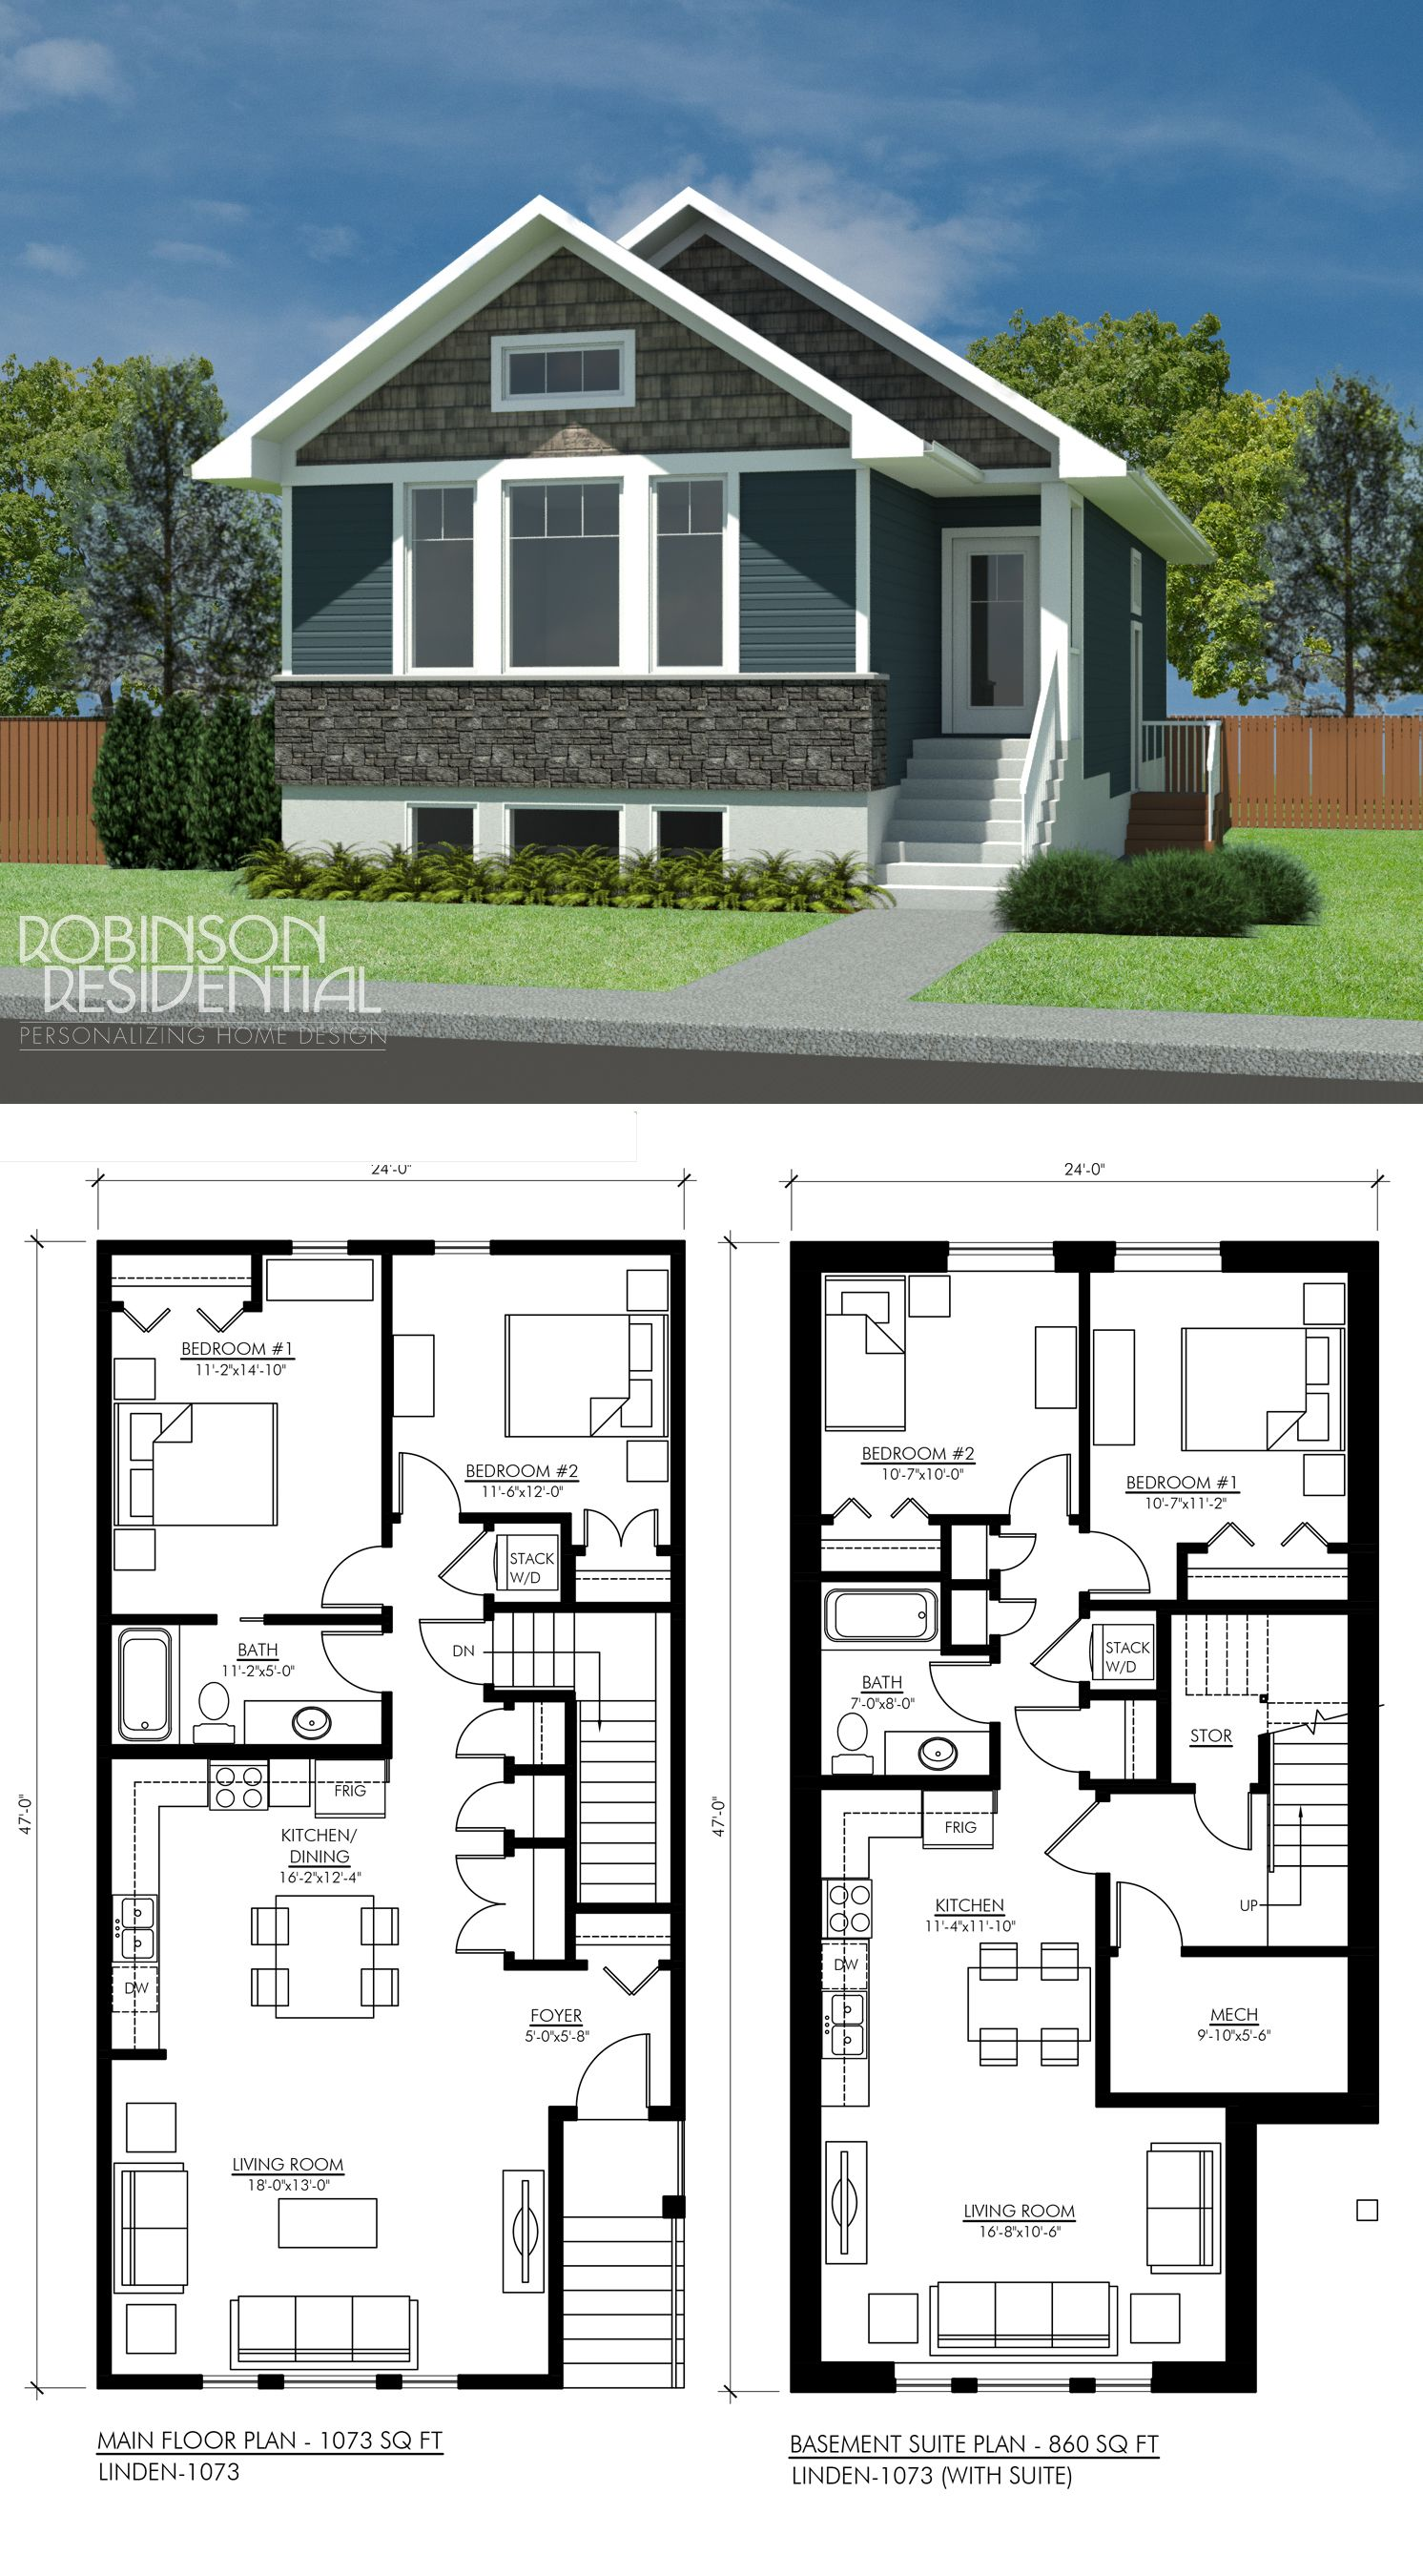 Craftsman Linden 1073 With Suite Robinson Plans Basement House Plans New House Plans House Layouts